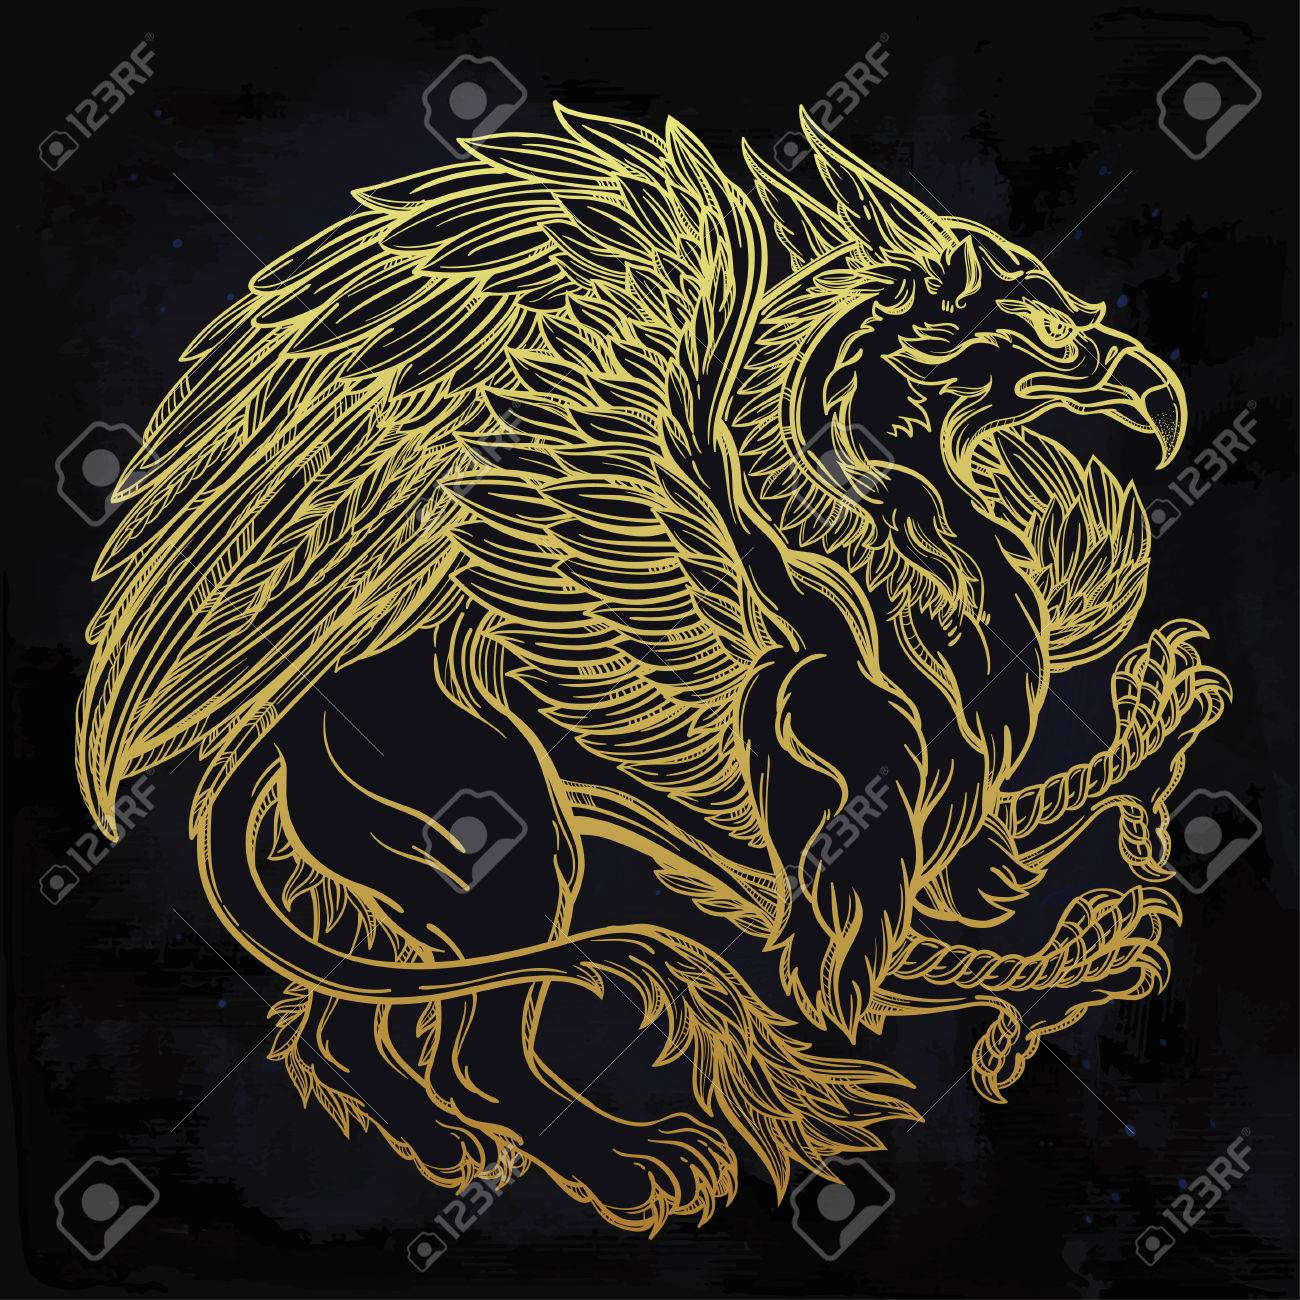 hand drawn vintage griffin mythological magic winged beast